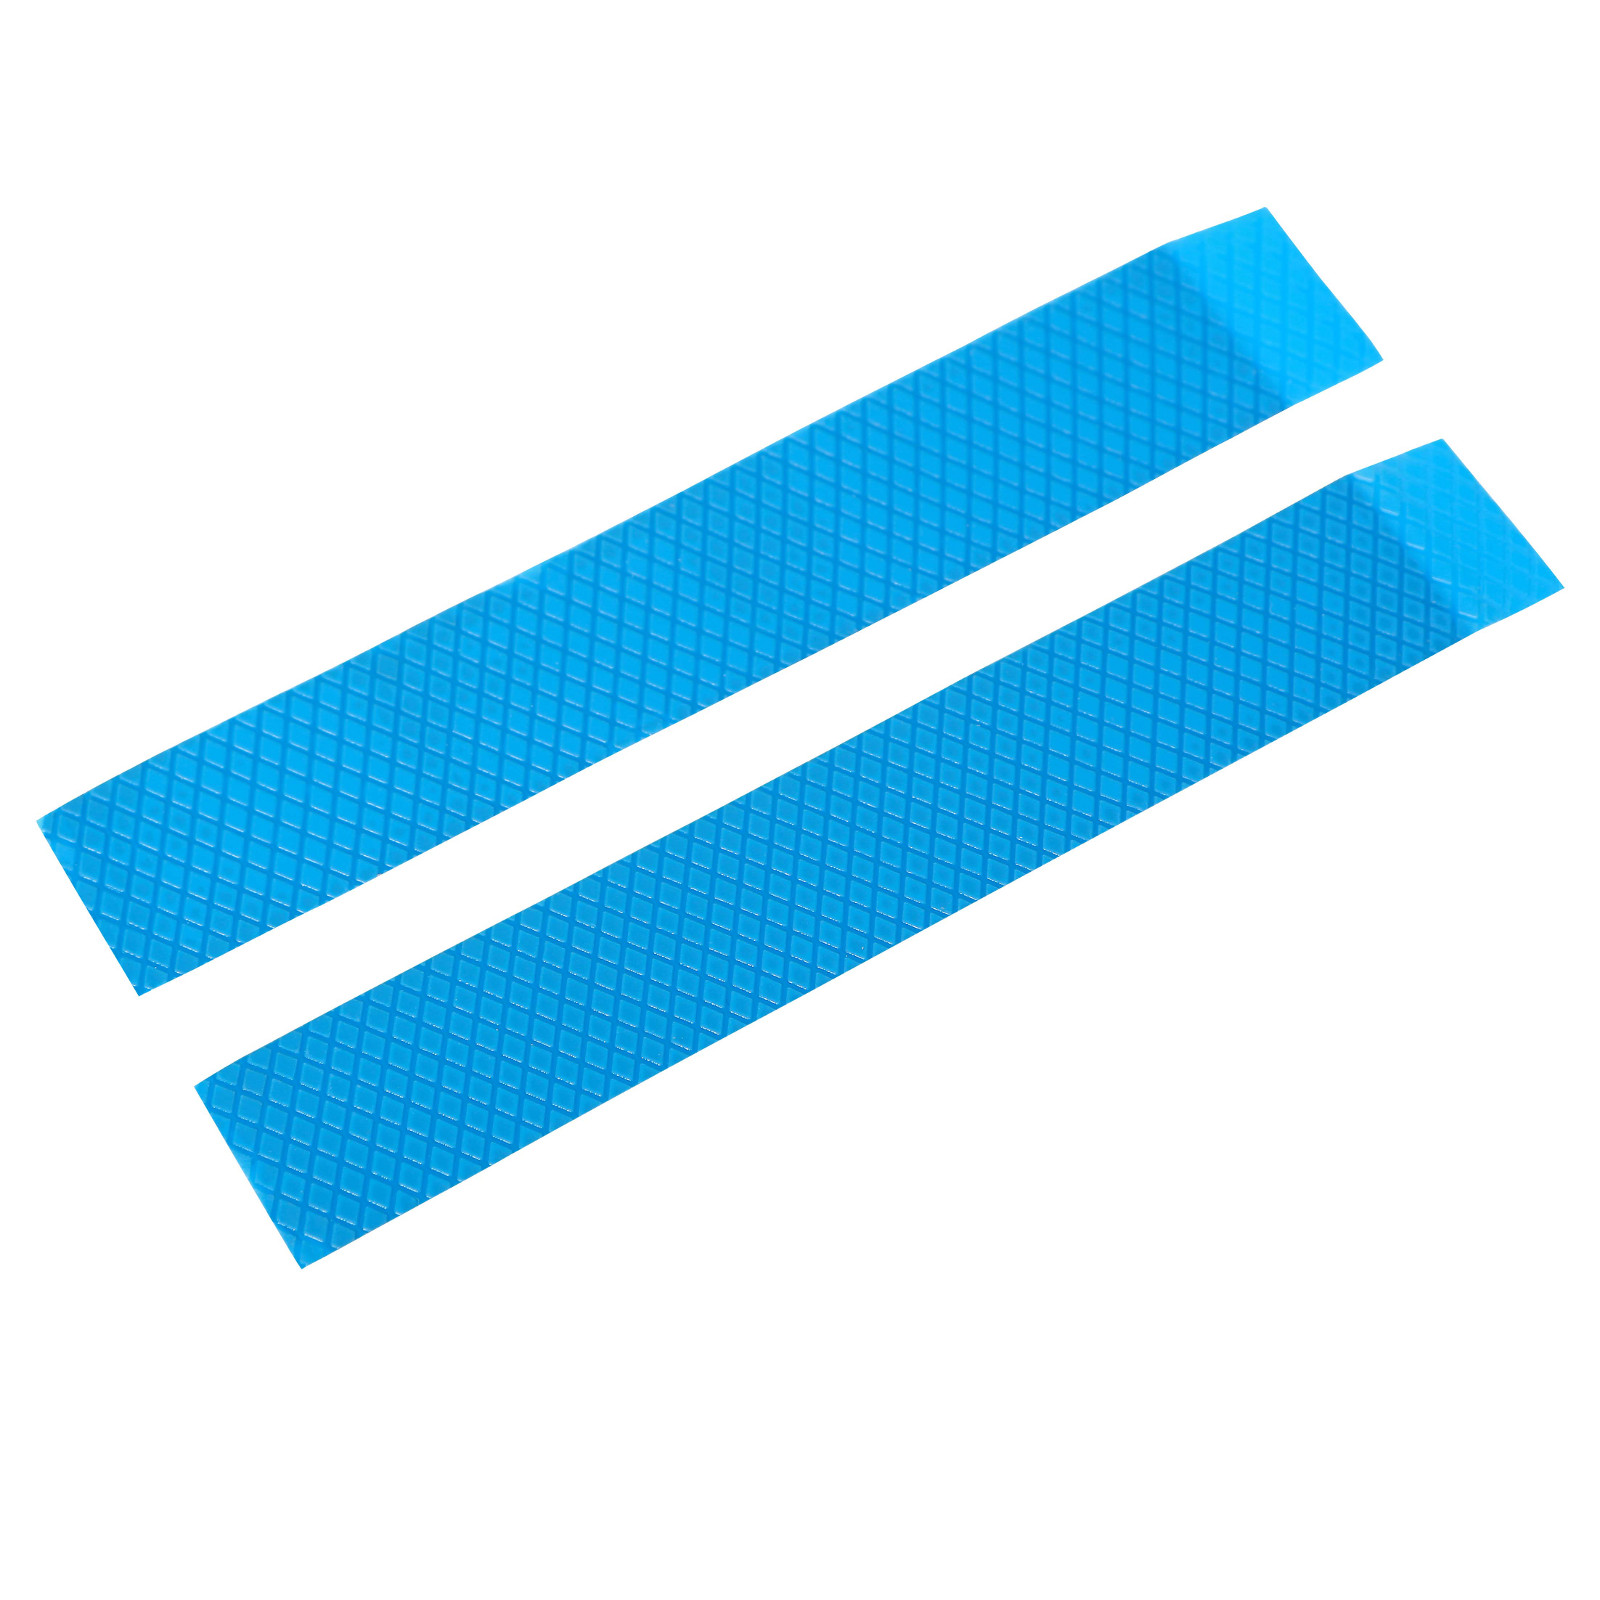 Gelid Solutions GP-Ultimate Thermal Pad 90 x 50 x 1.0 mm Excellent Heat Conduction Ideal Gap Filler Easy Installation Thermal Conductivity 15 W